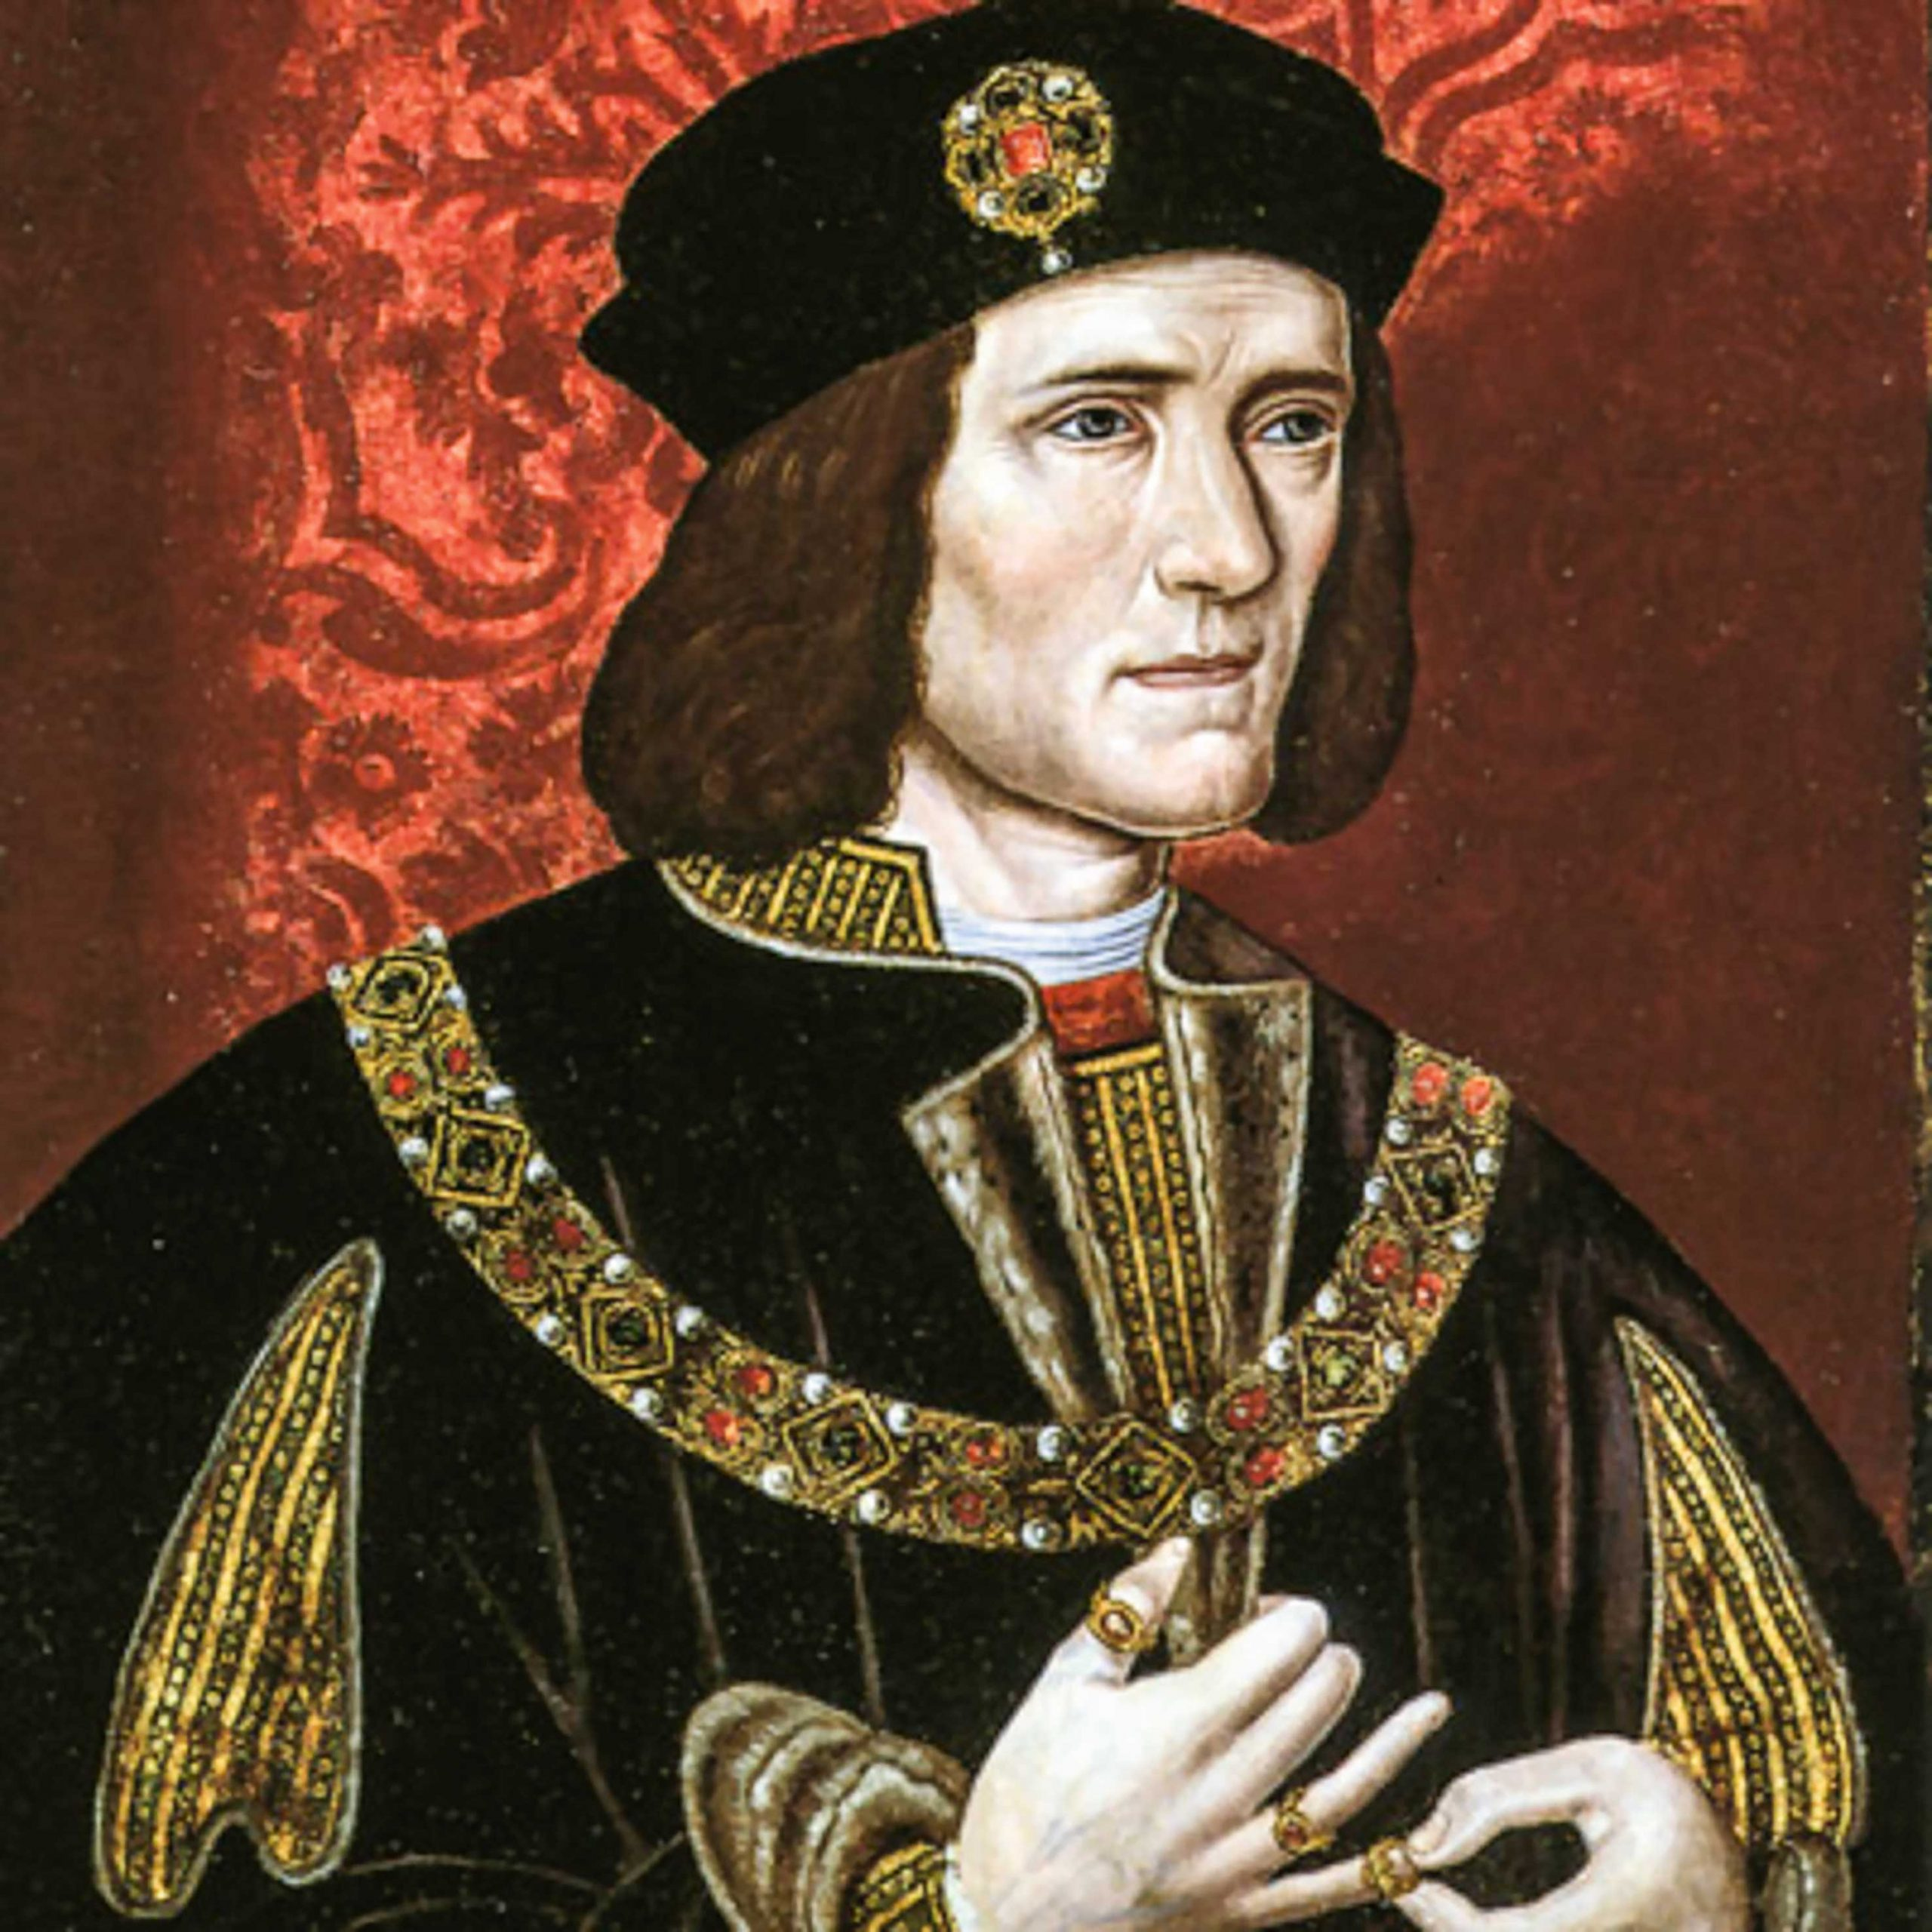 In the footsteps of King Richard III